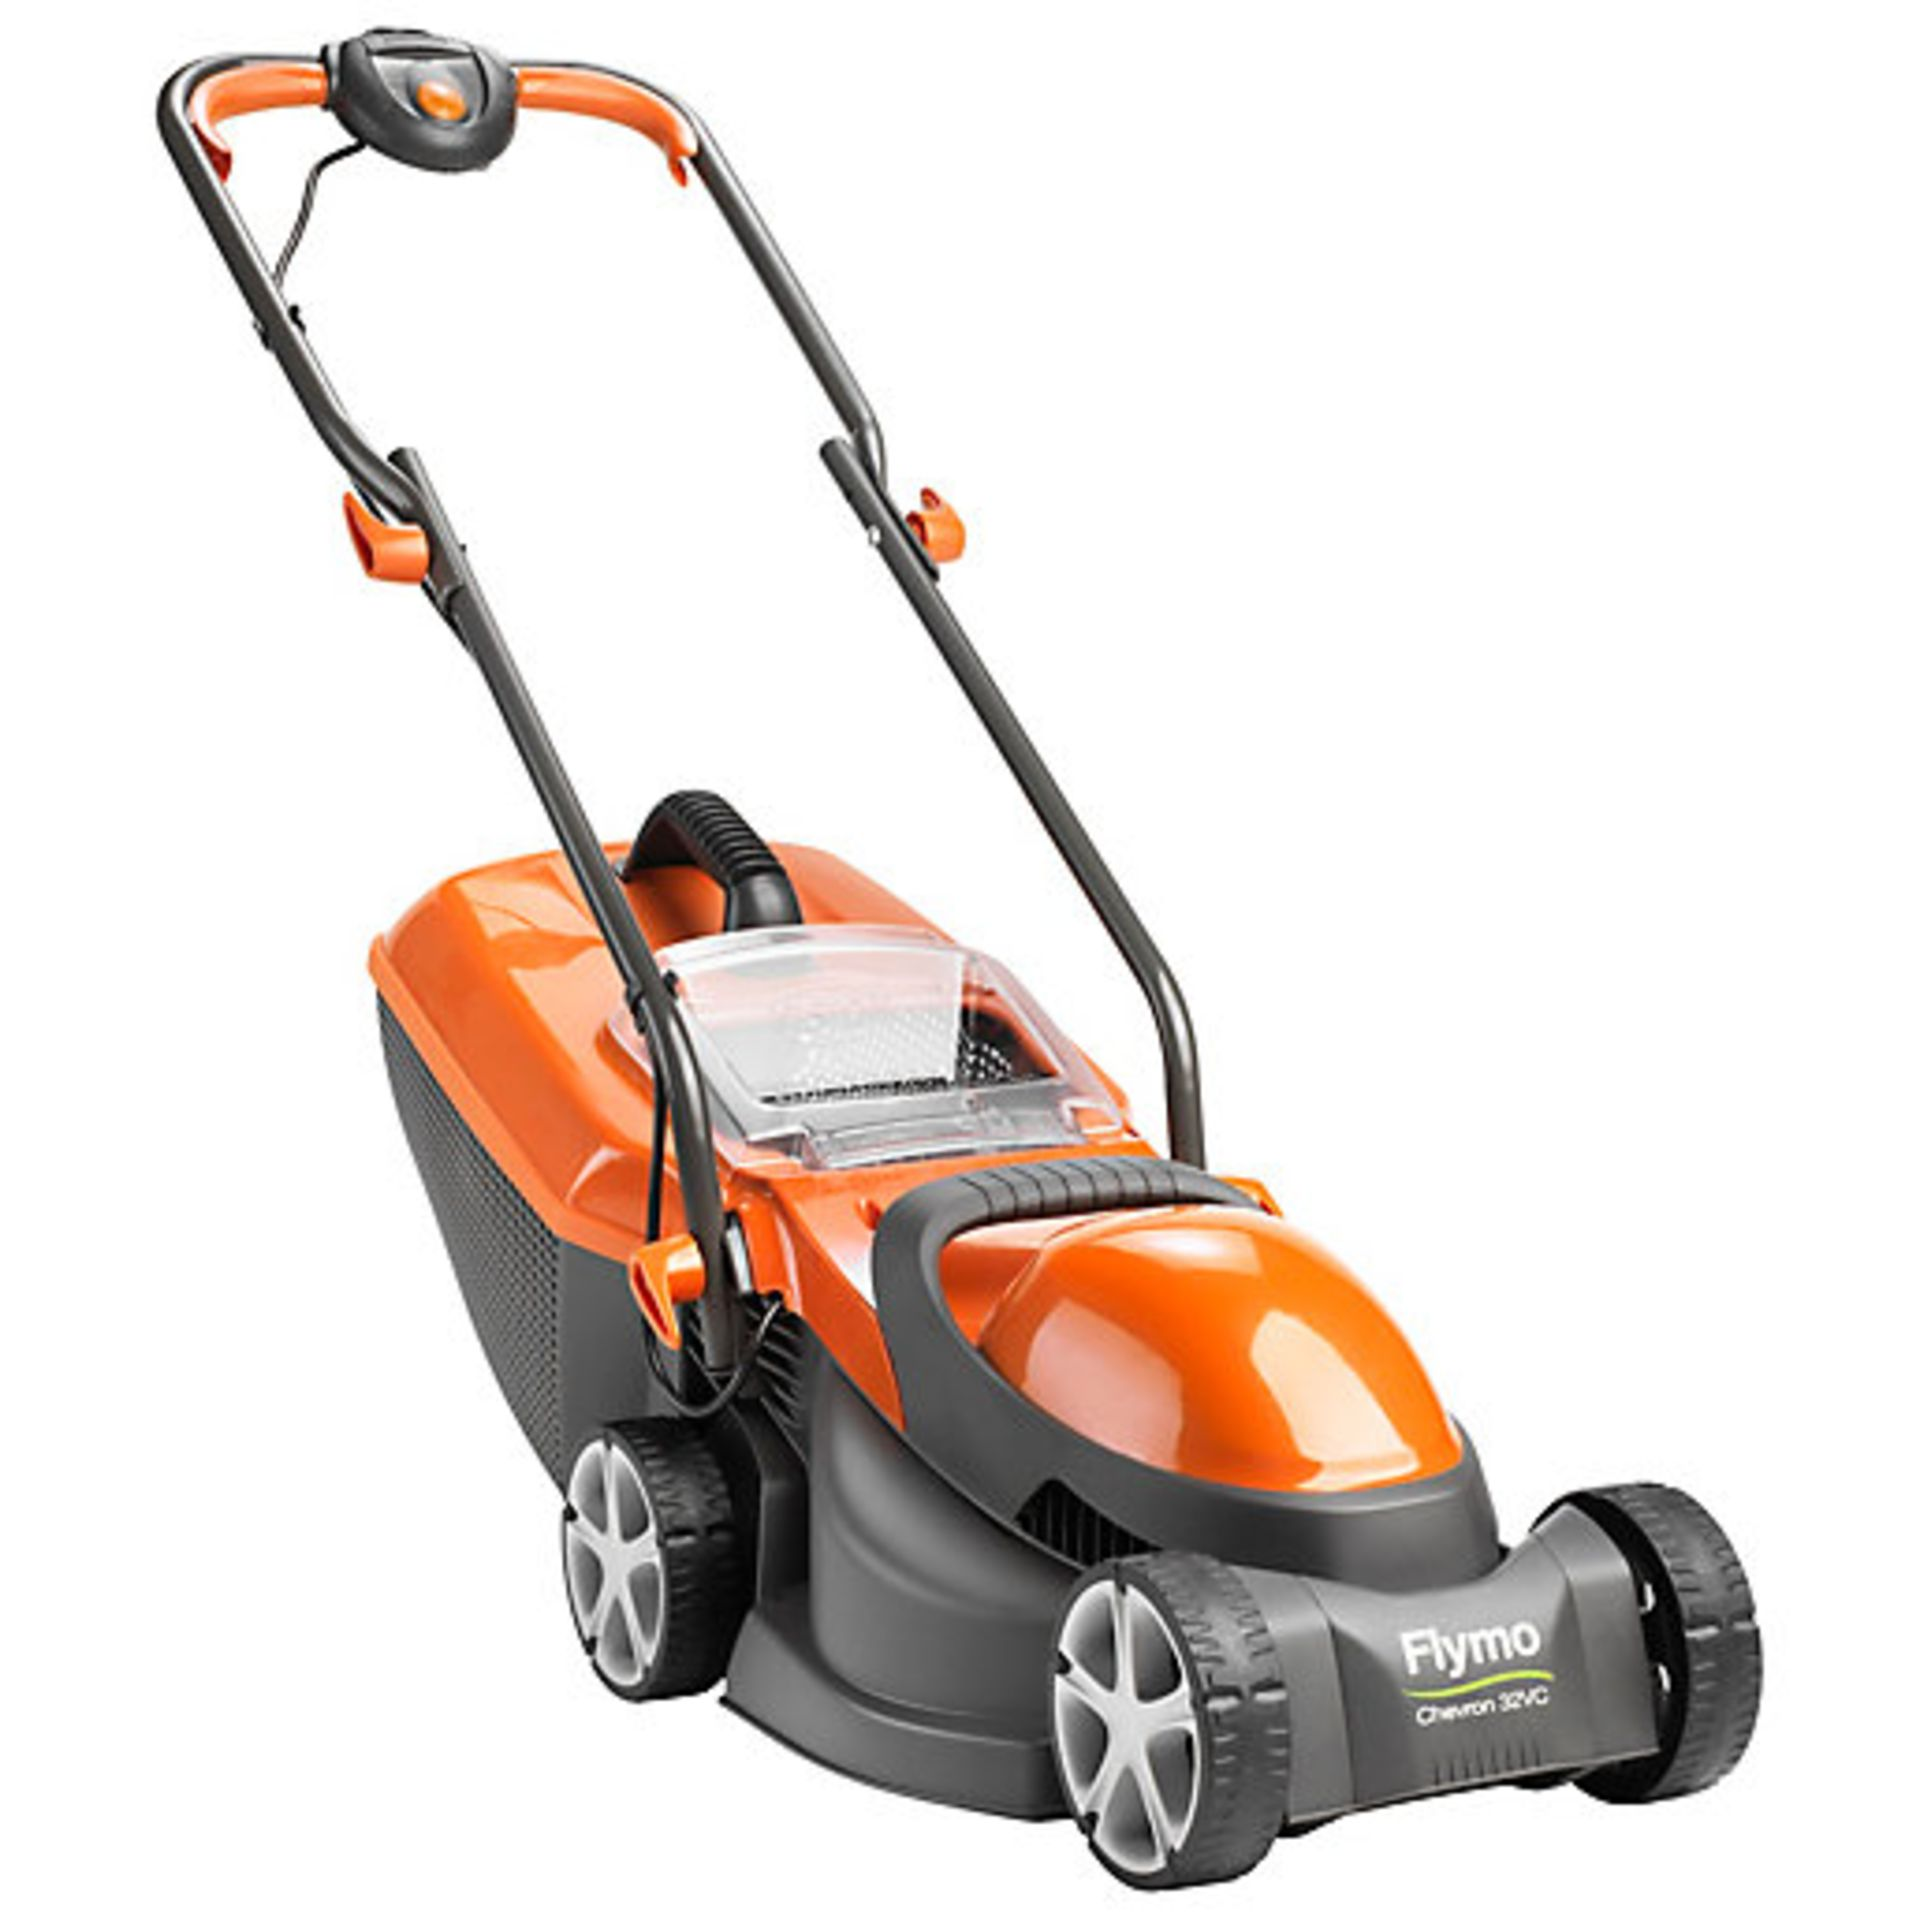 (P3) 1x Flymo Chevron 32V Lawn Mower. Contents Appear As New, Clean & Unused. - Image 2 of 5